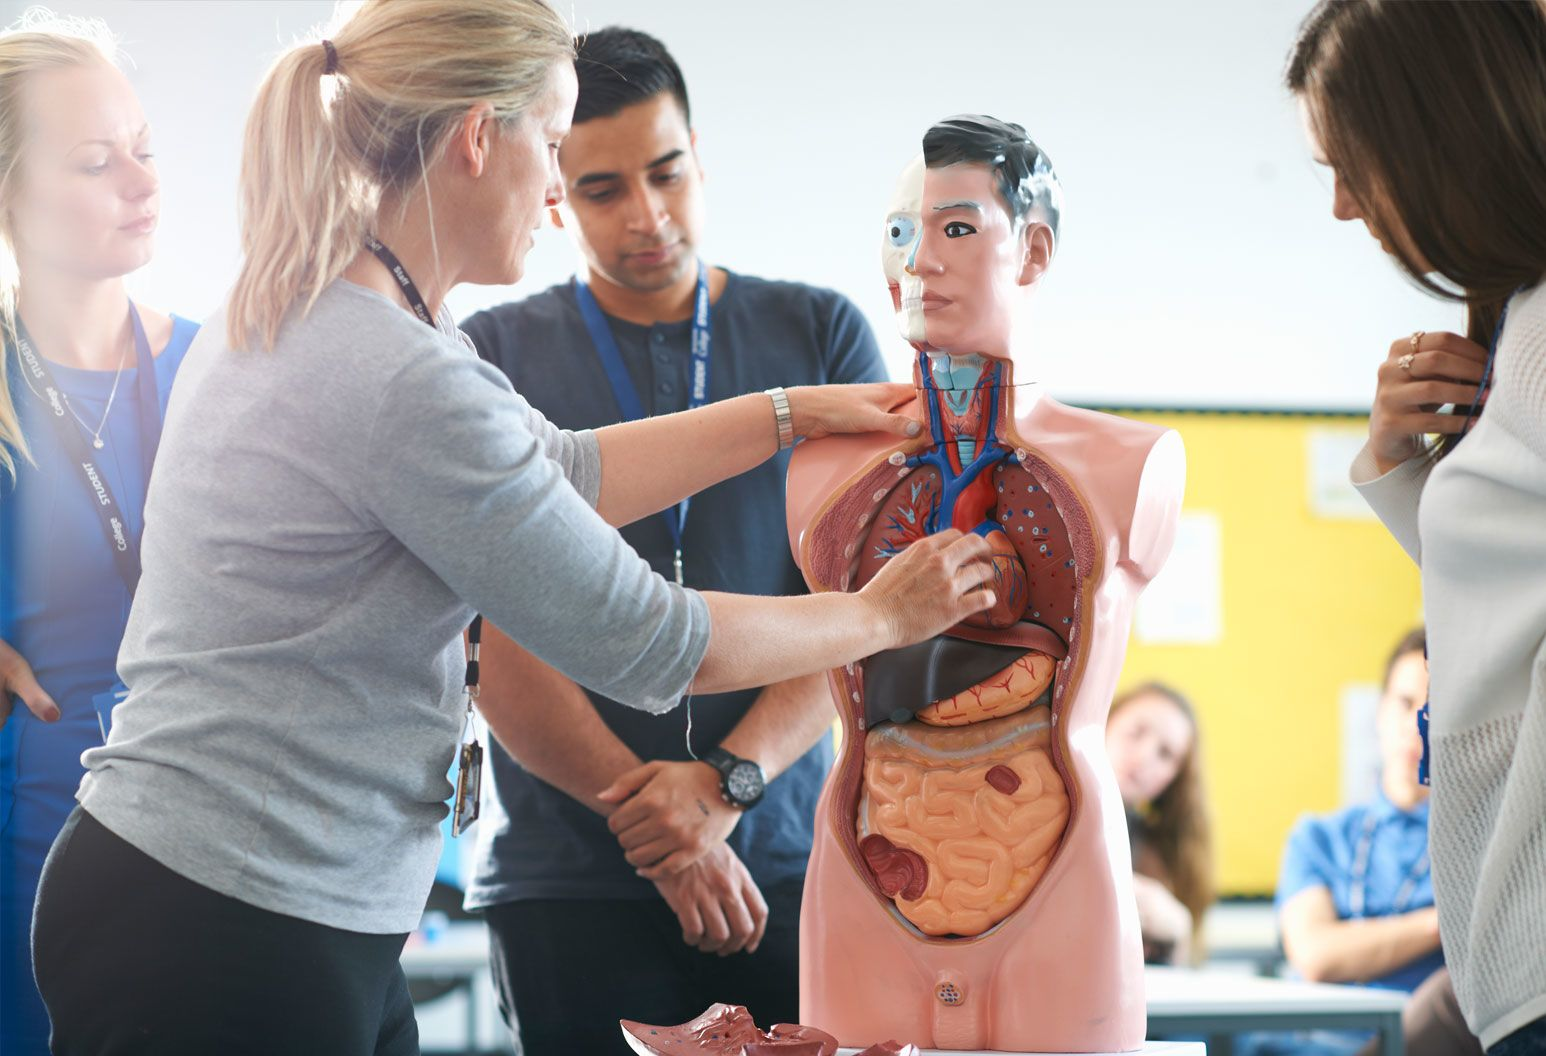 A woman teaches a class using a human dummy with organs exposed.